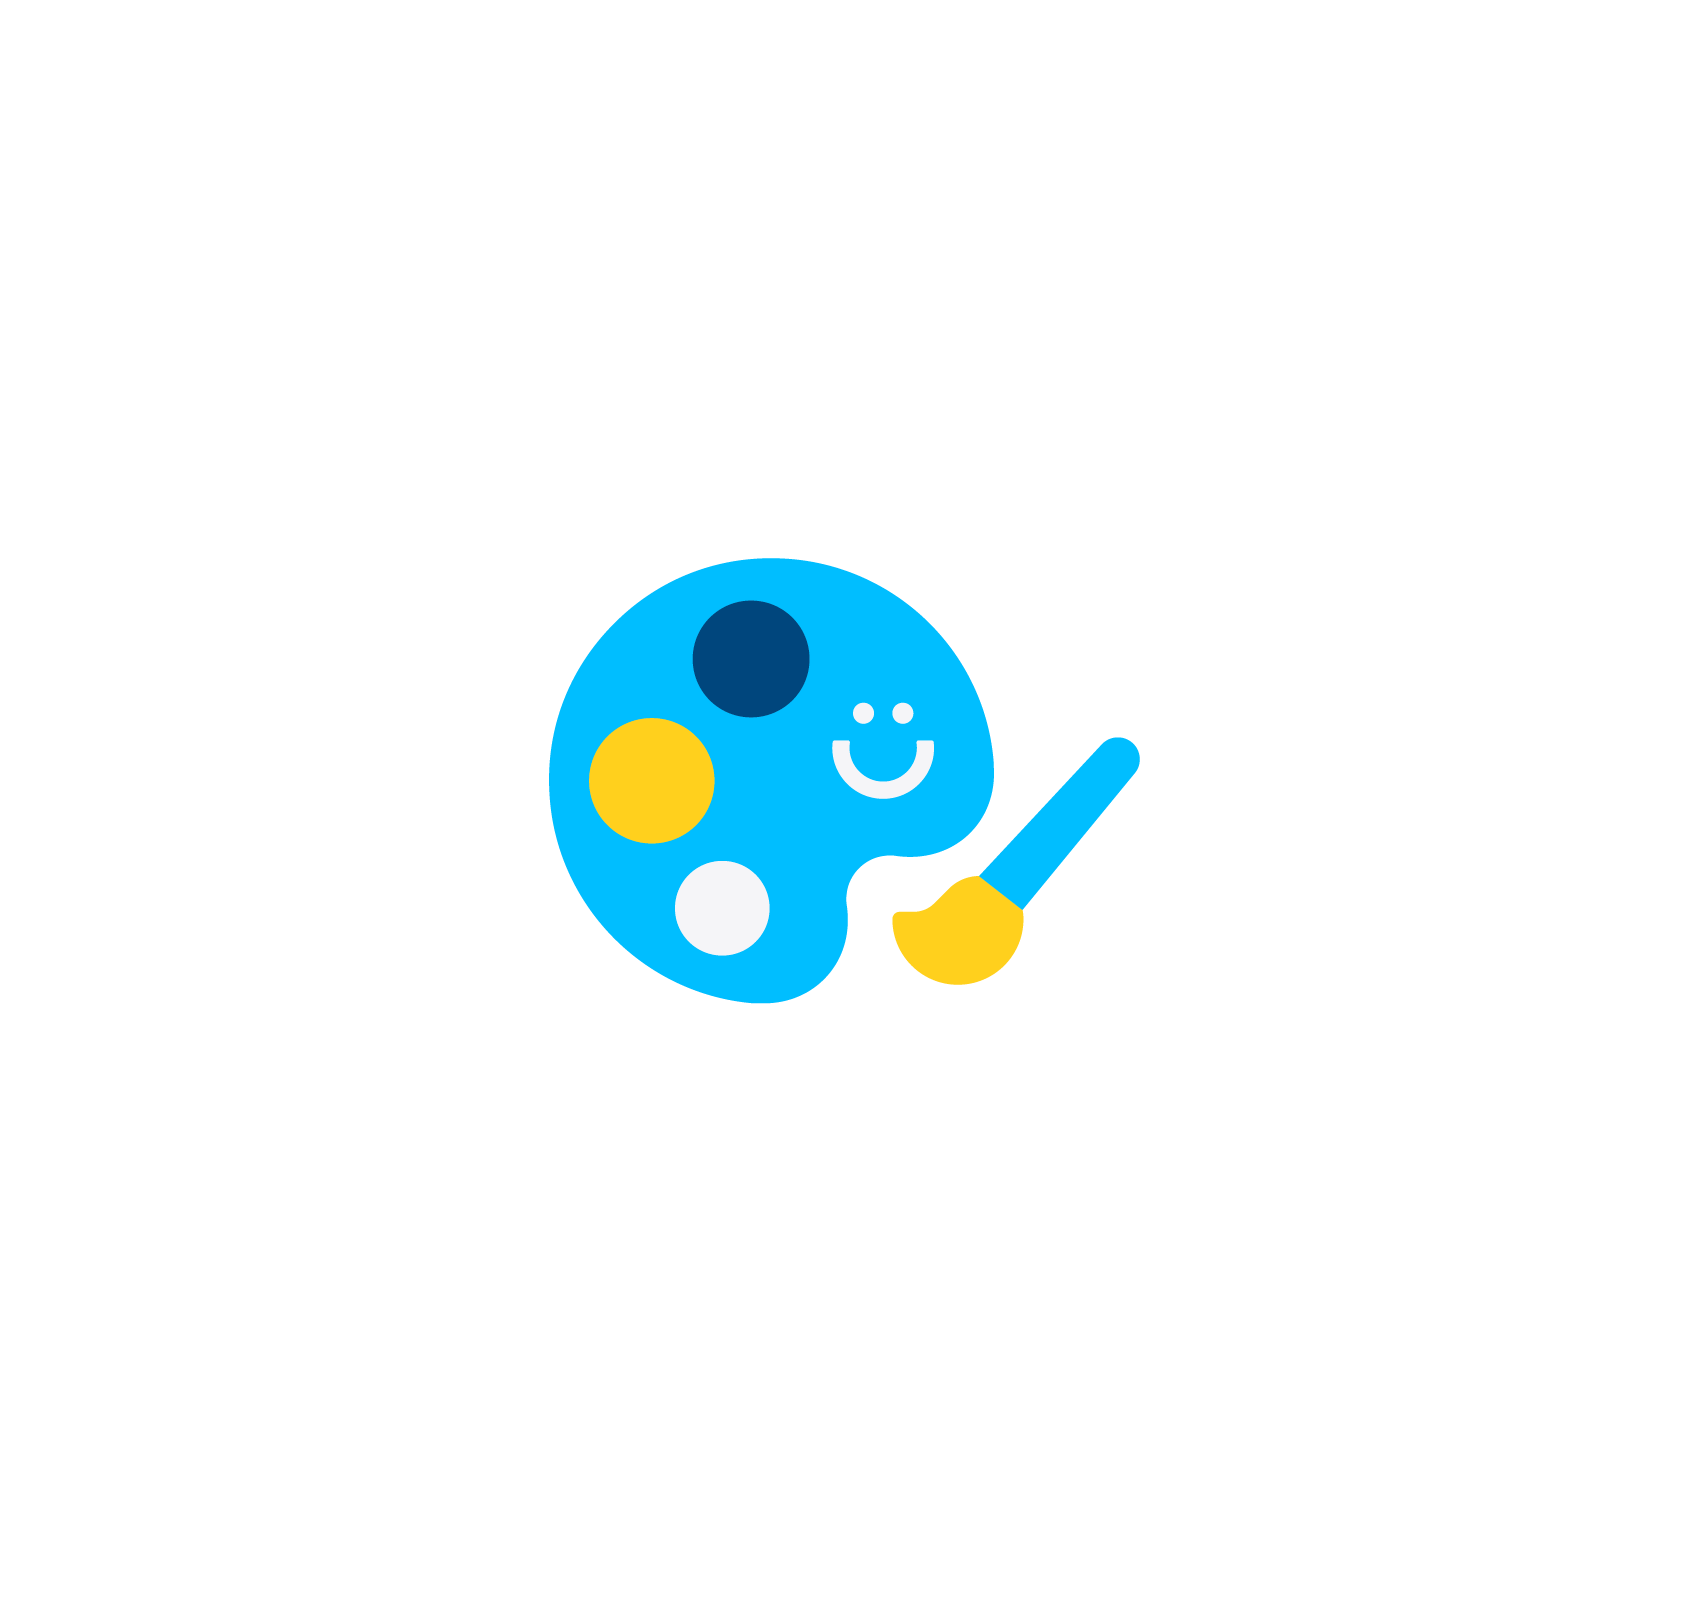 CPC_ICON_ART-01.png